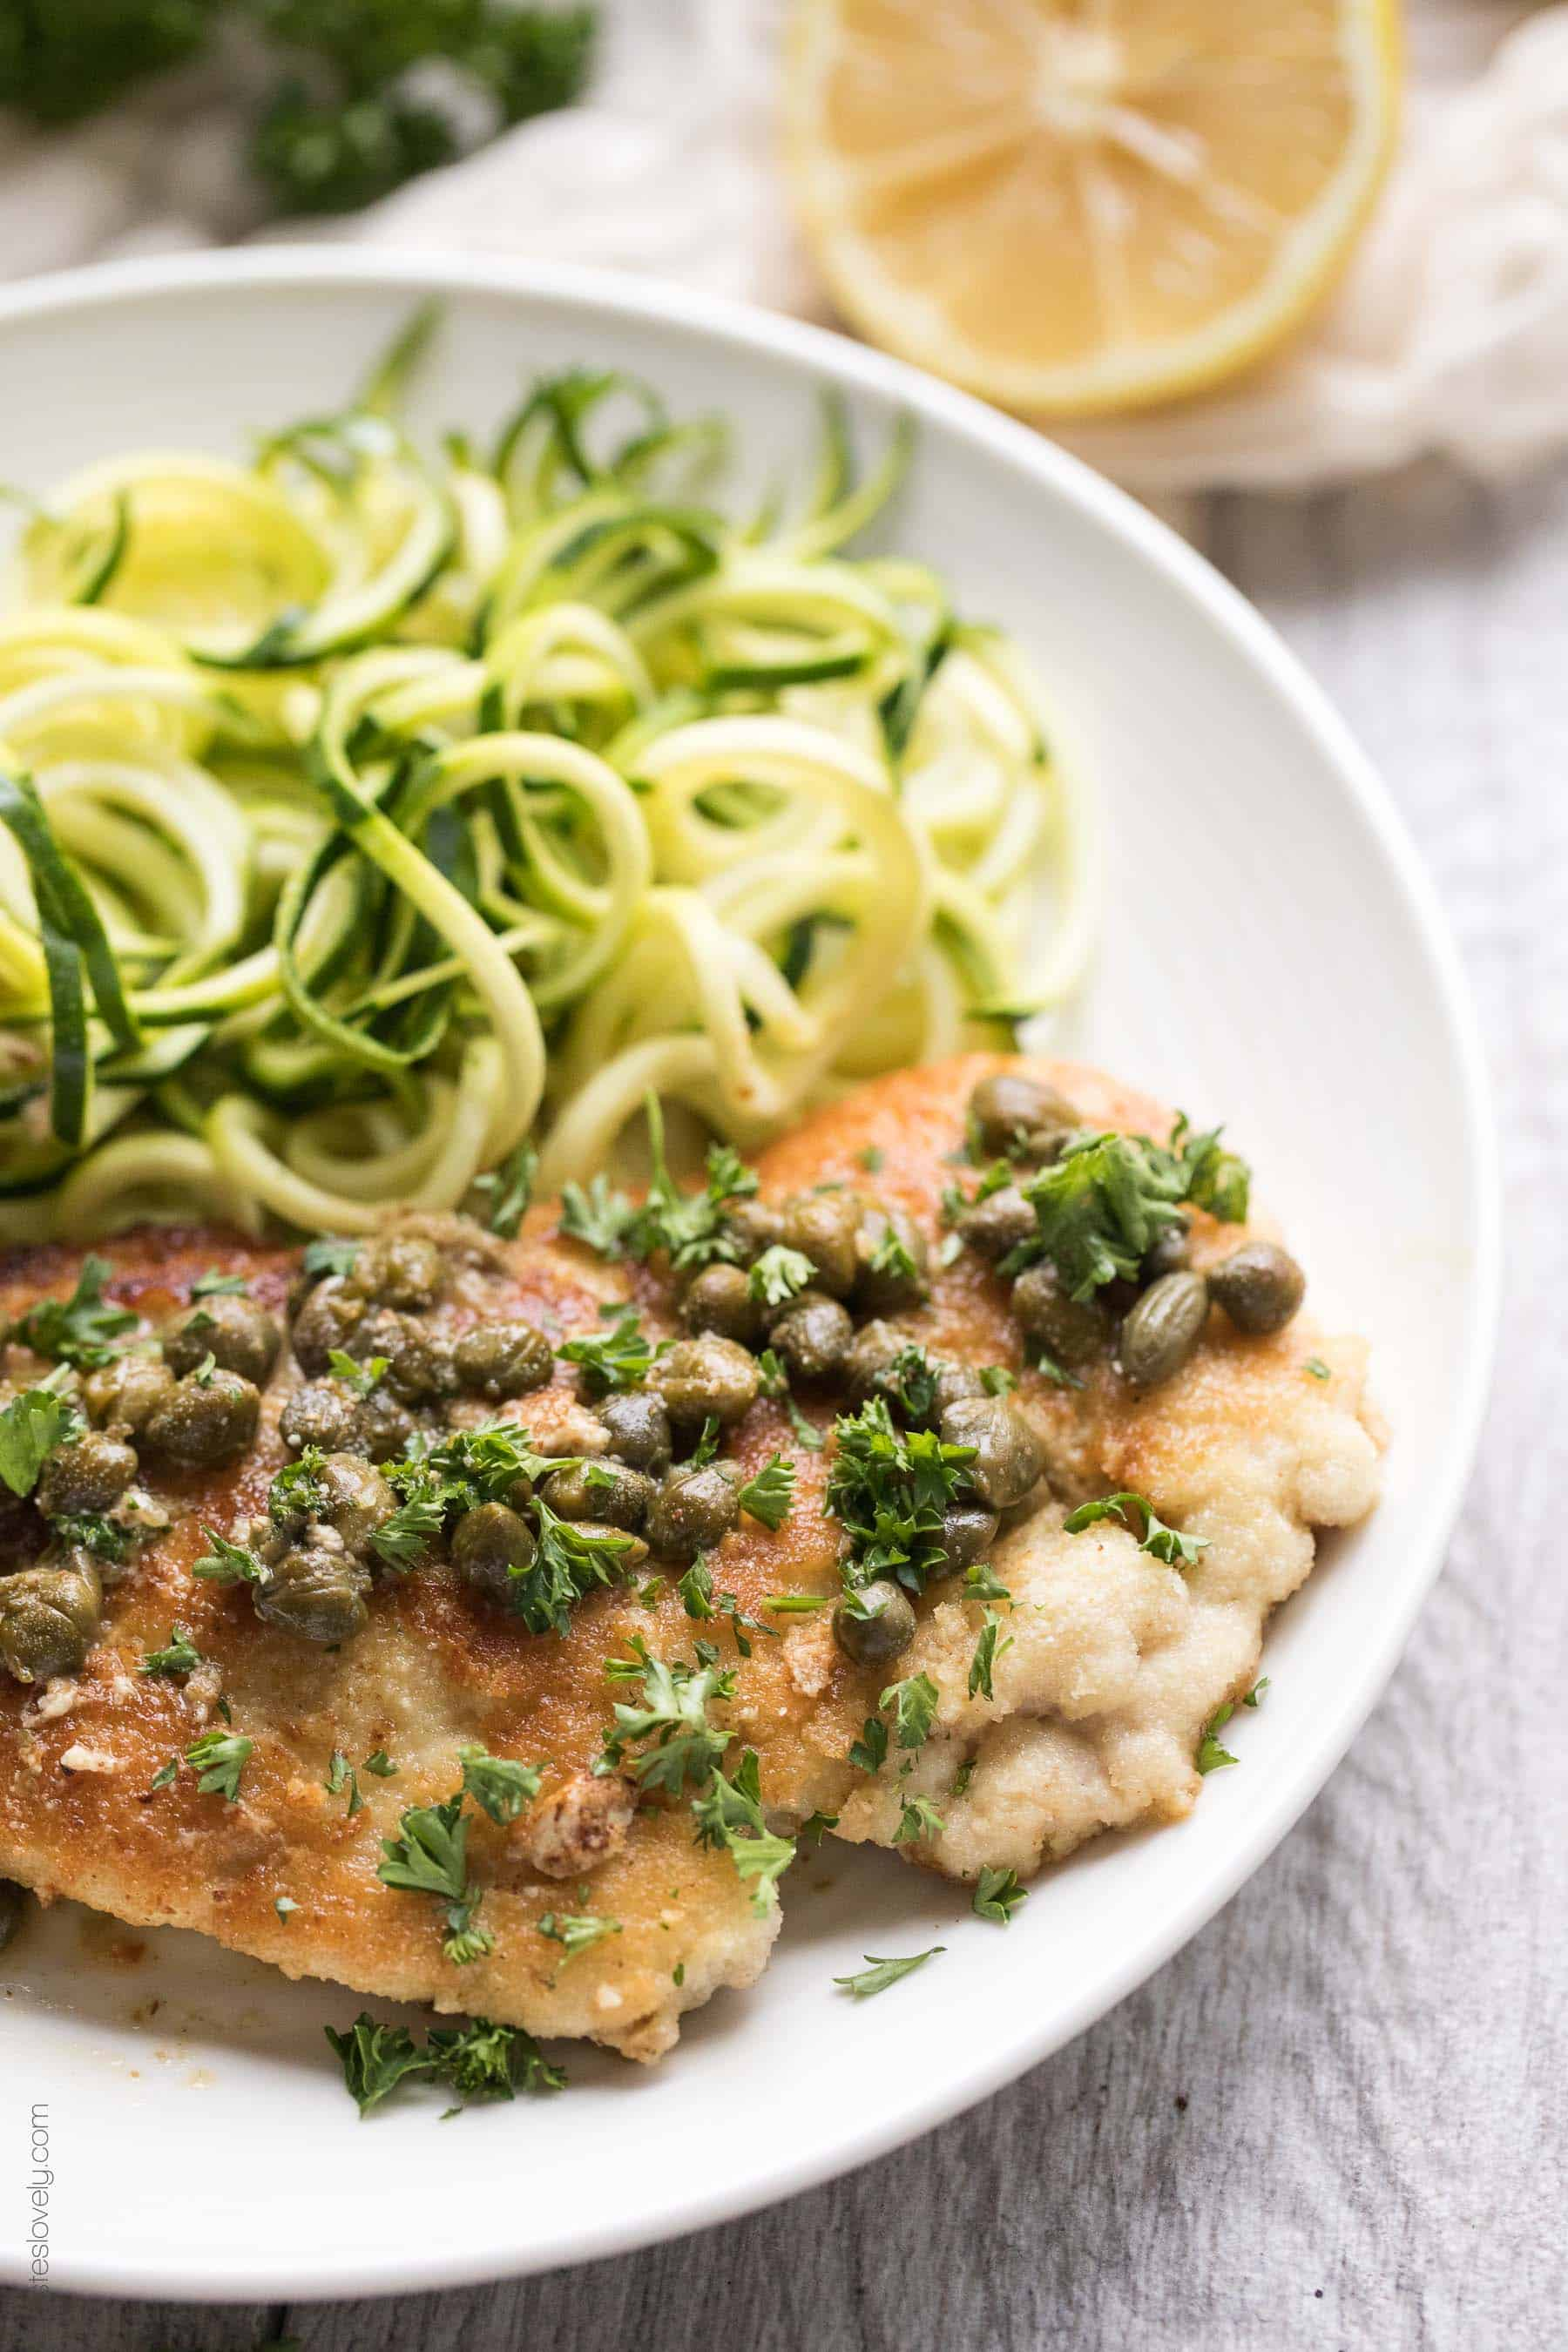 Paleo & Whole30 Chicken Piccata - a 15 minute dinner recipe! Dredged in almond flour and served with a lemony caper sauce. Gluten free, grain free, dairy free, sugar free, clean eating.